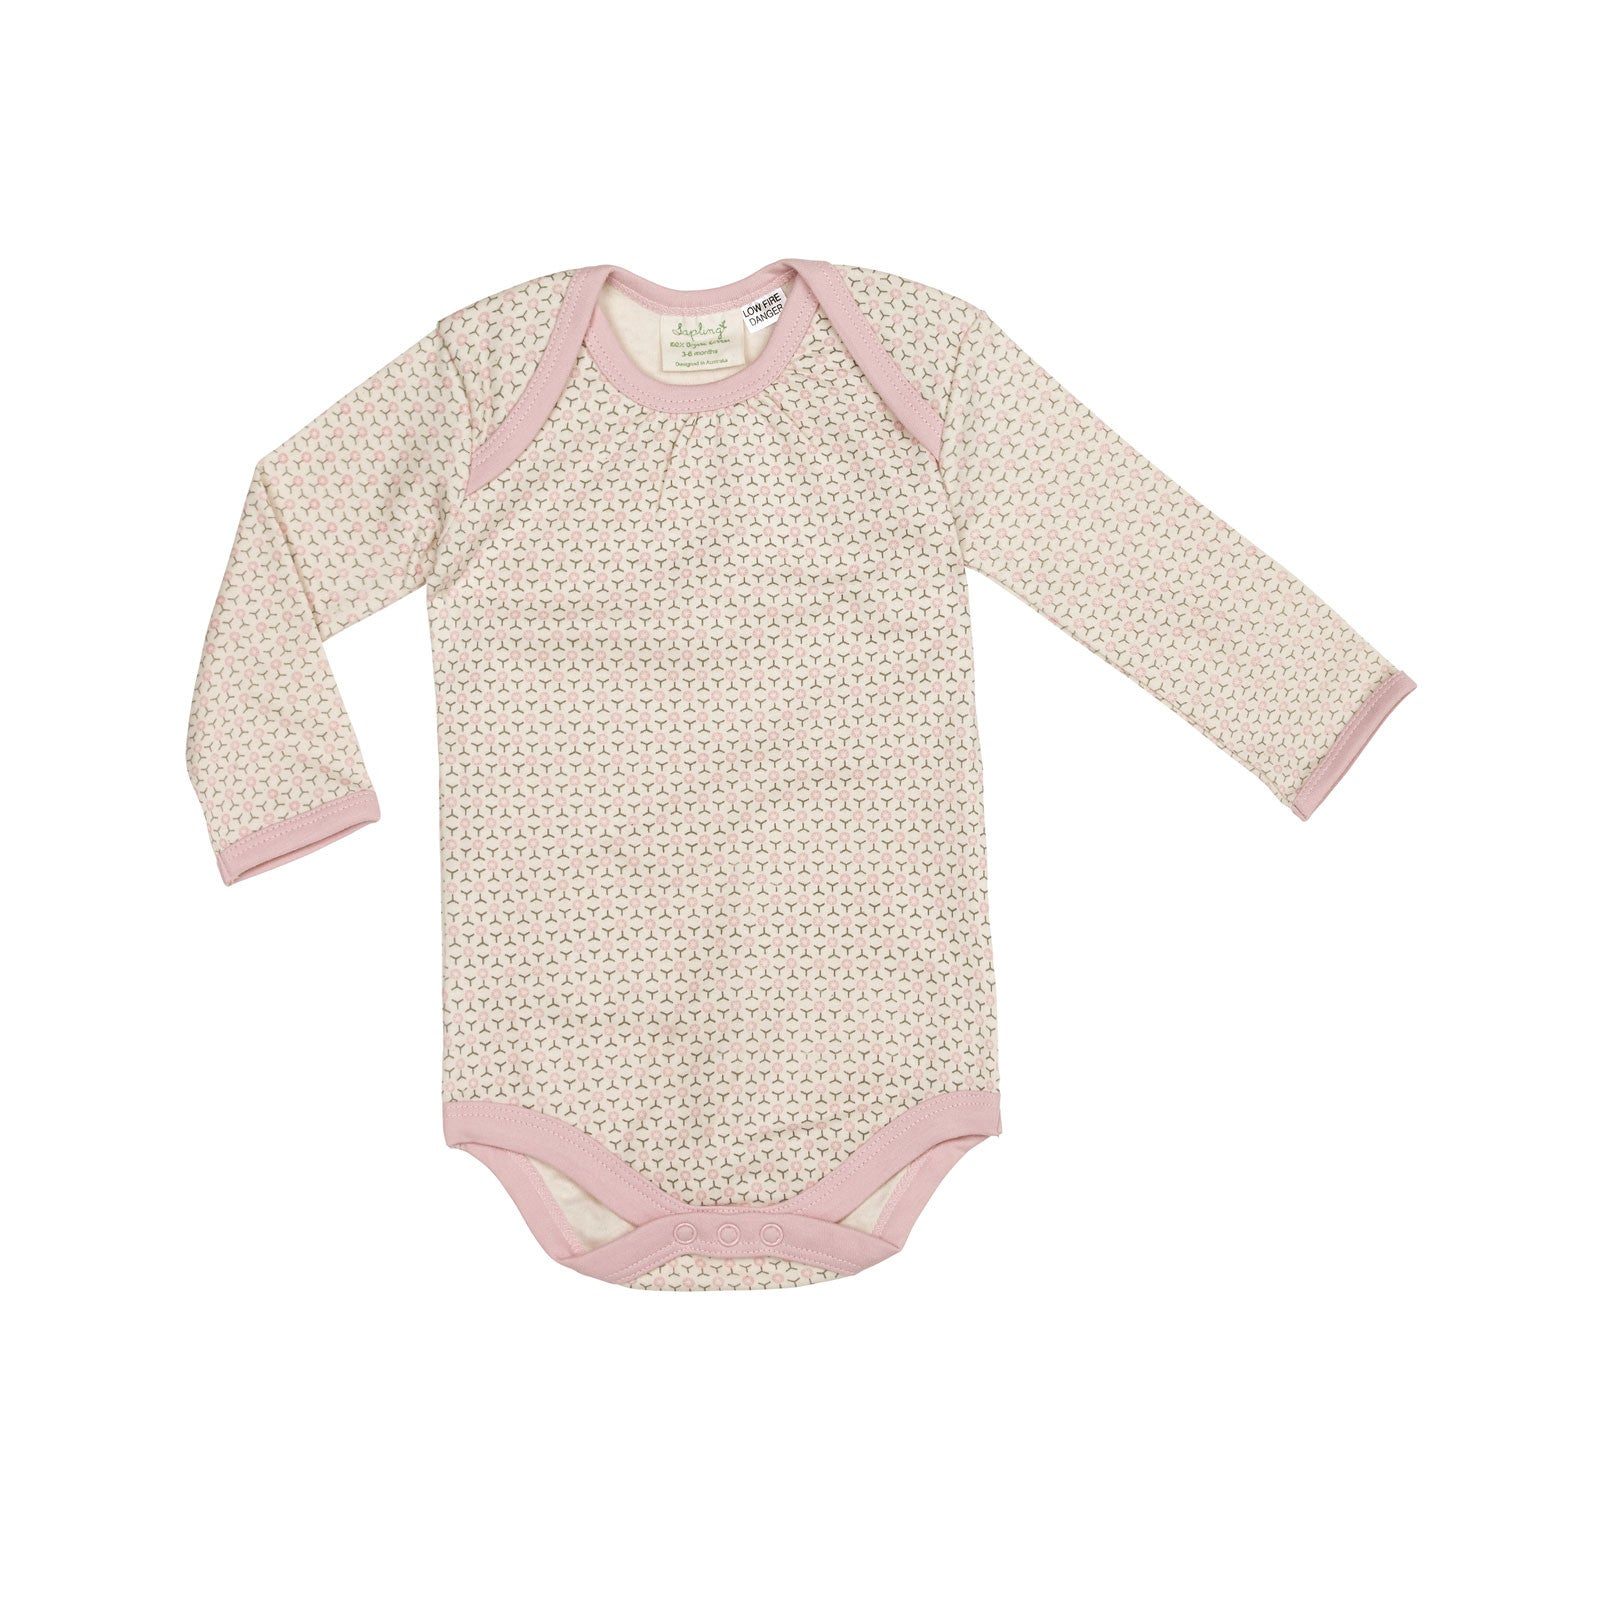 Sapling Child Essentials Long Sleeve Bodysuit Sapling Child General 0-3M / Dusty Pink at Little Earth Nest Eco Shop